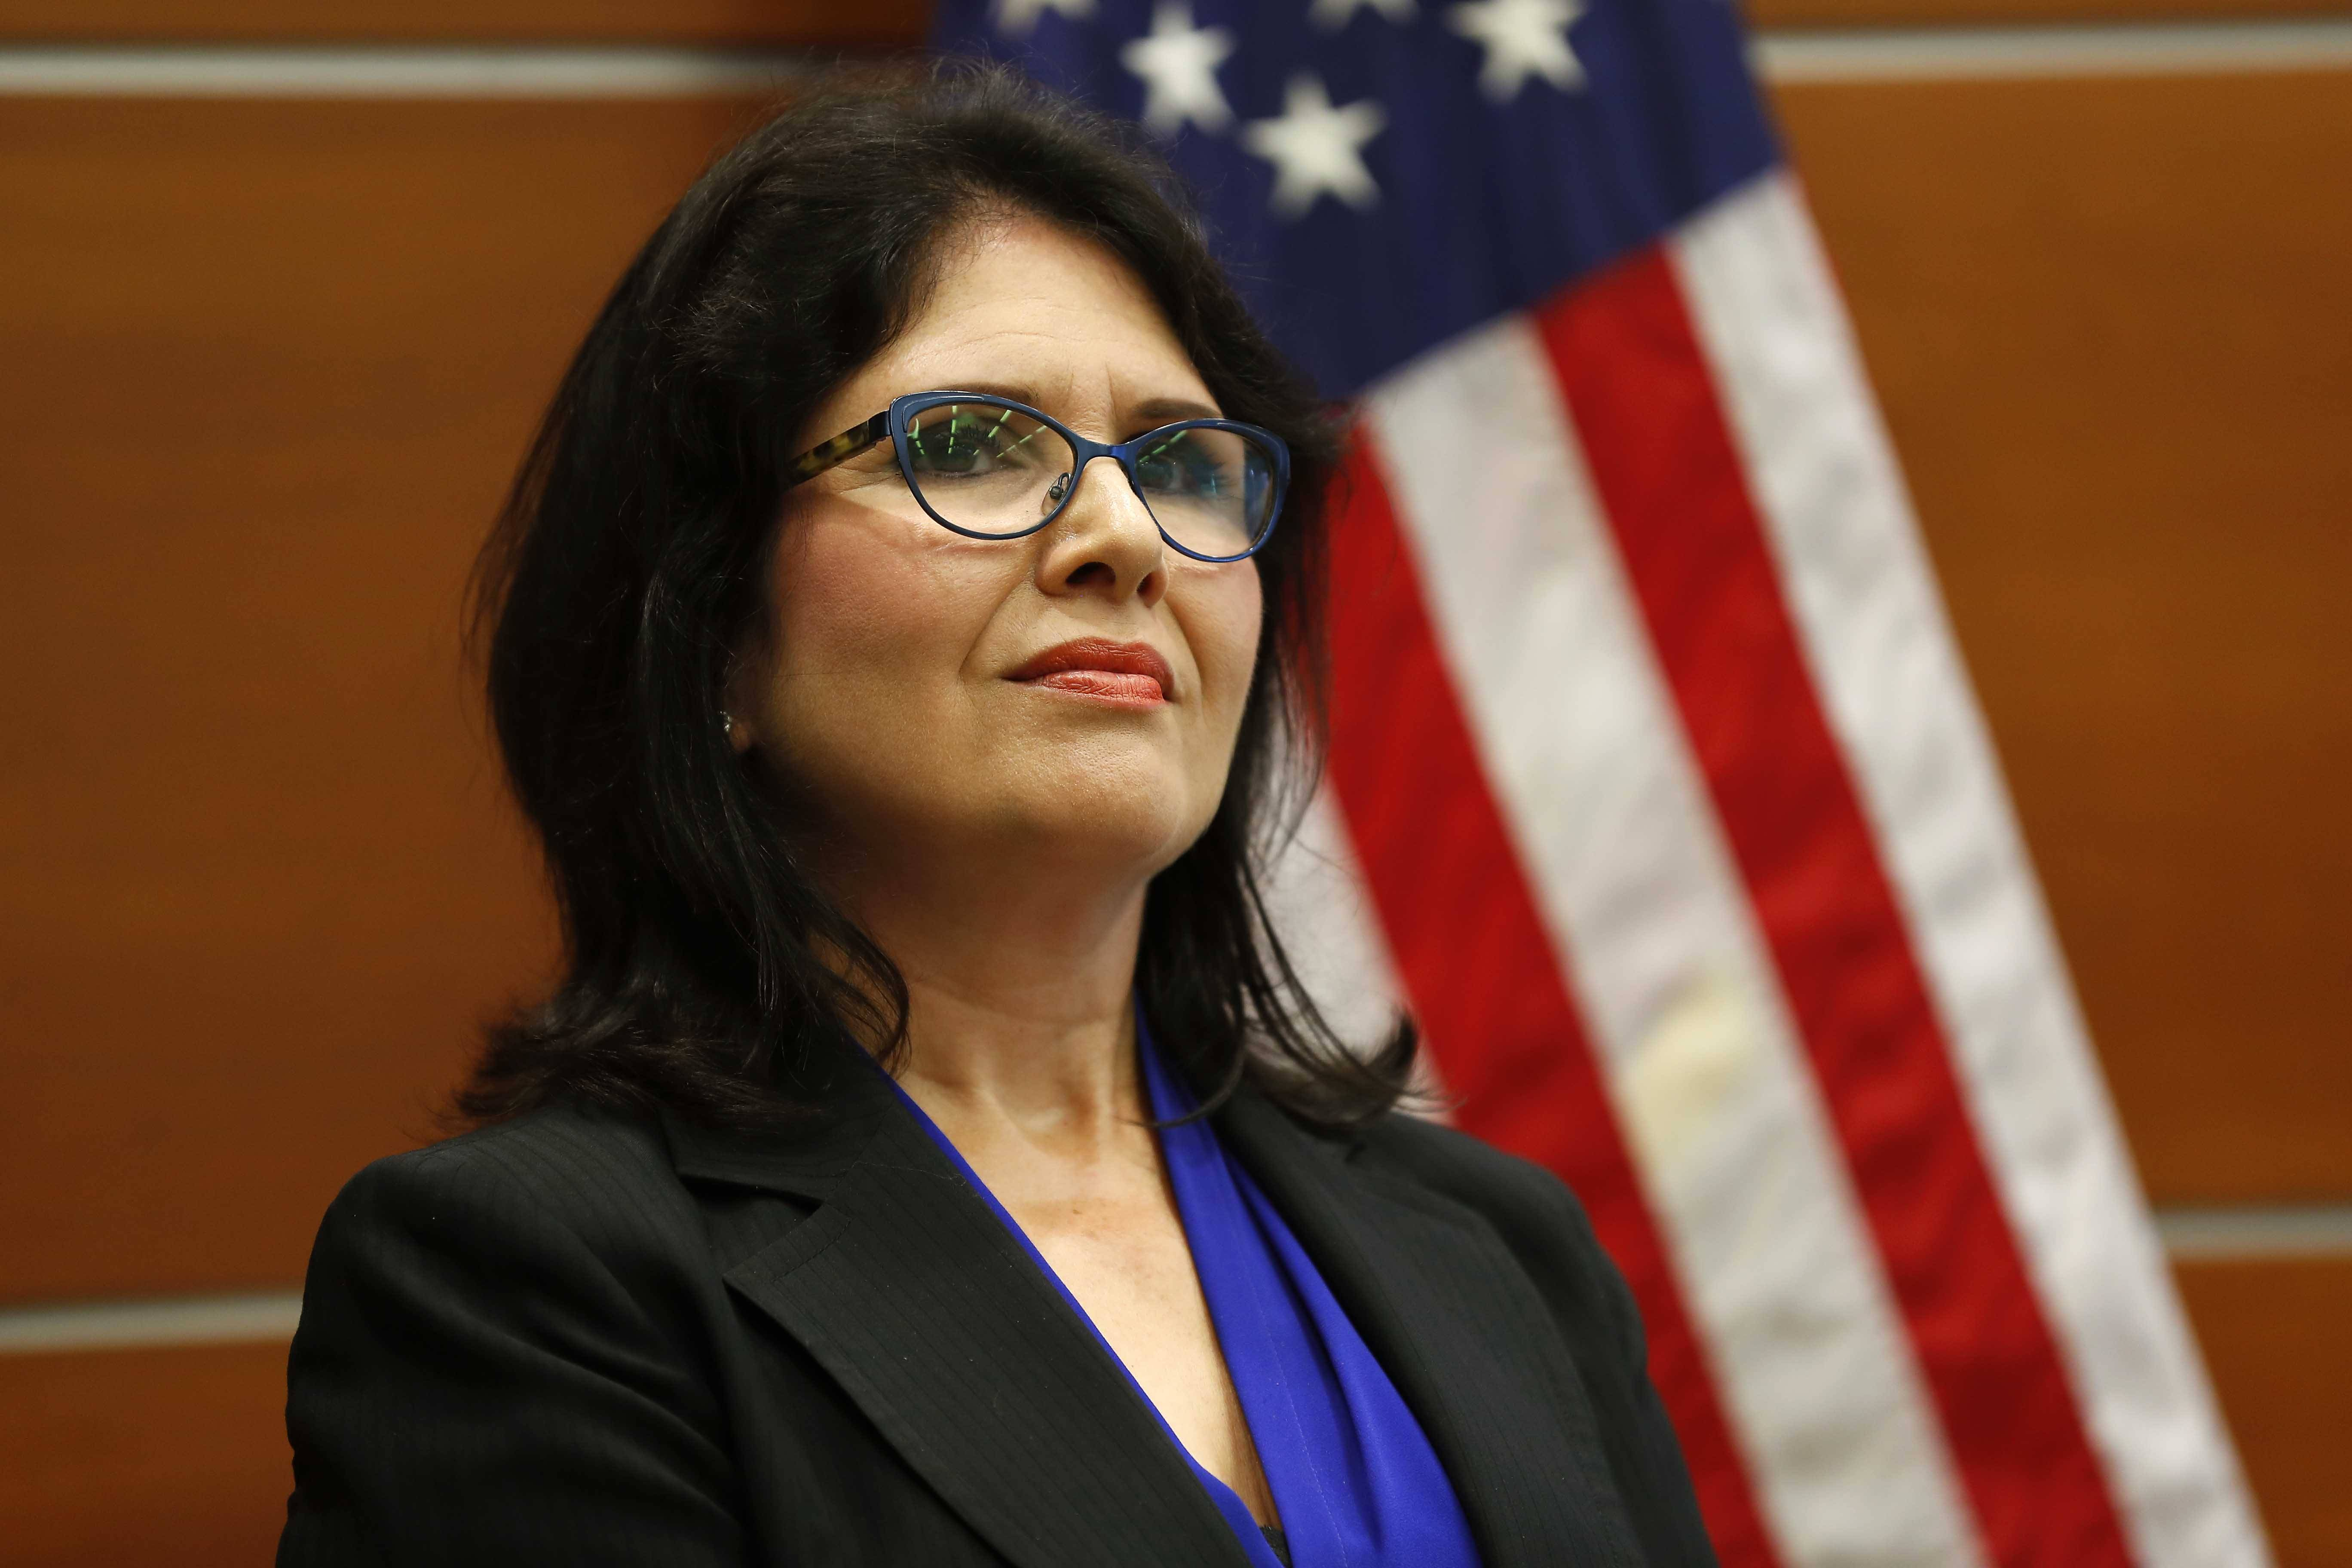 Lt. Gov. Evelyn Sanguinetti recognized 20 examples of consolidated government services throughout the state Tuesday at the Hoffman Estates Police Department.